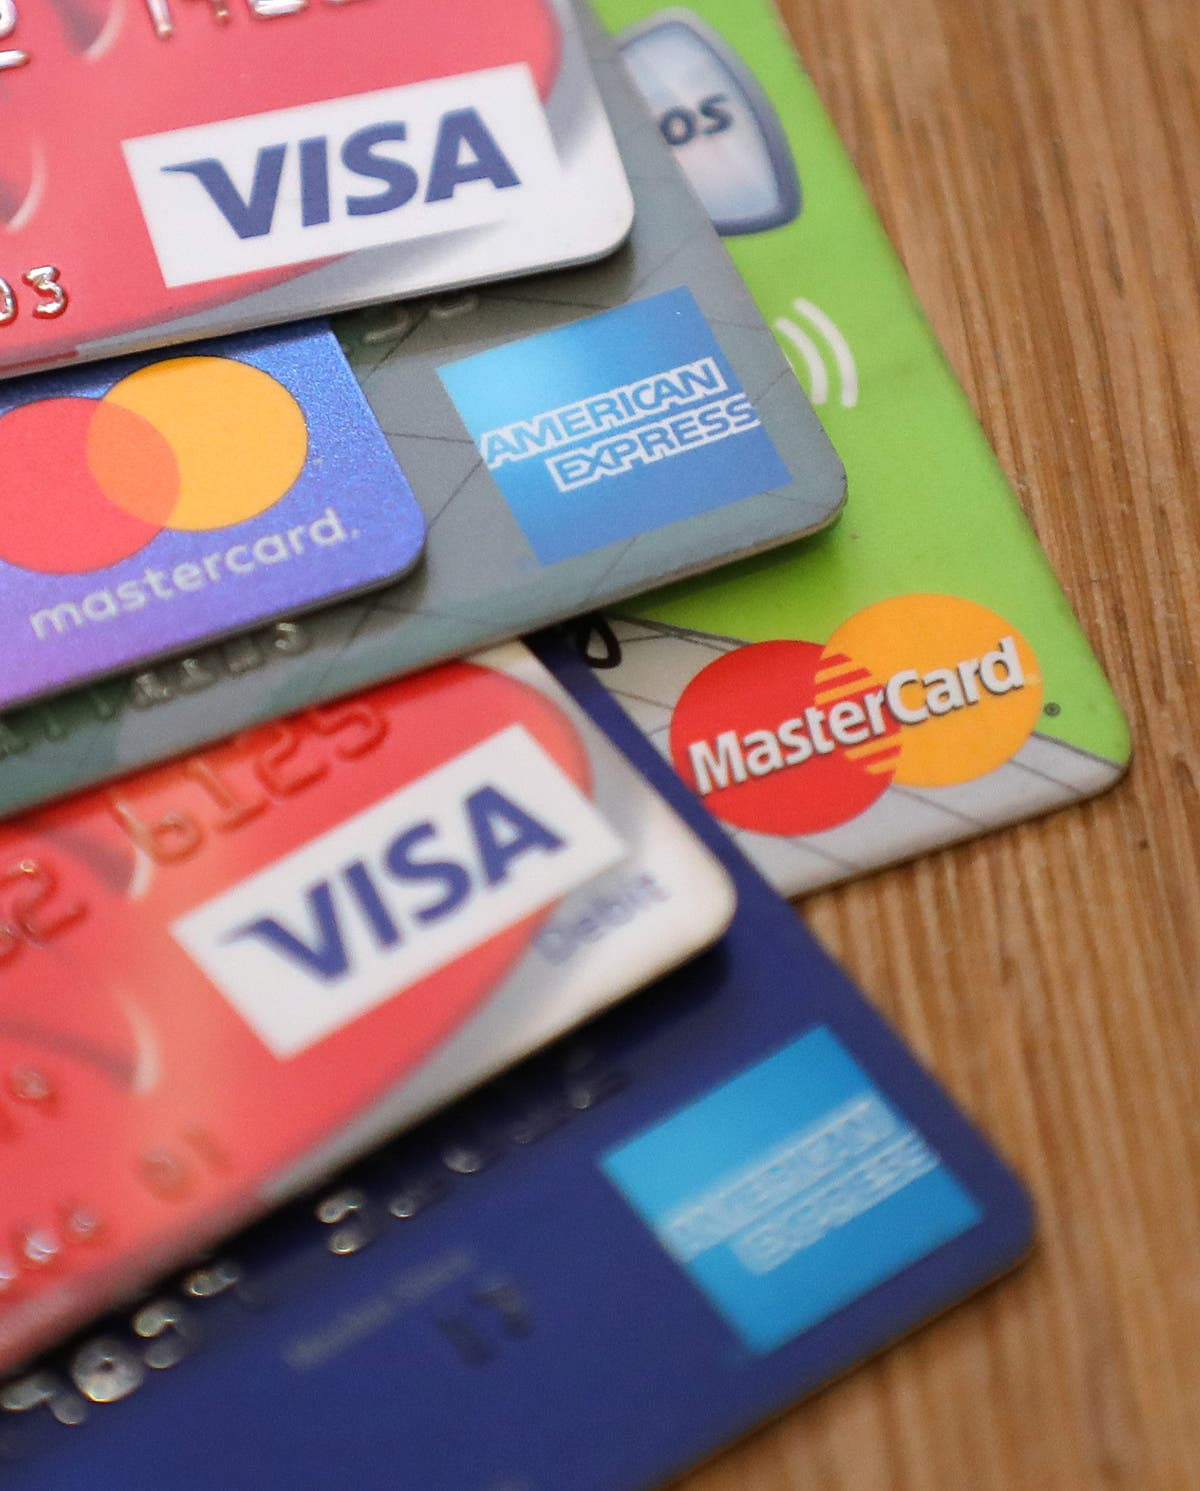 Card payments accounted for more than £4 in every £5 spent in 2020, says BRC